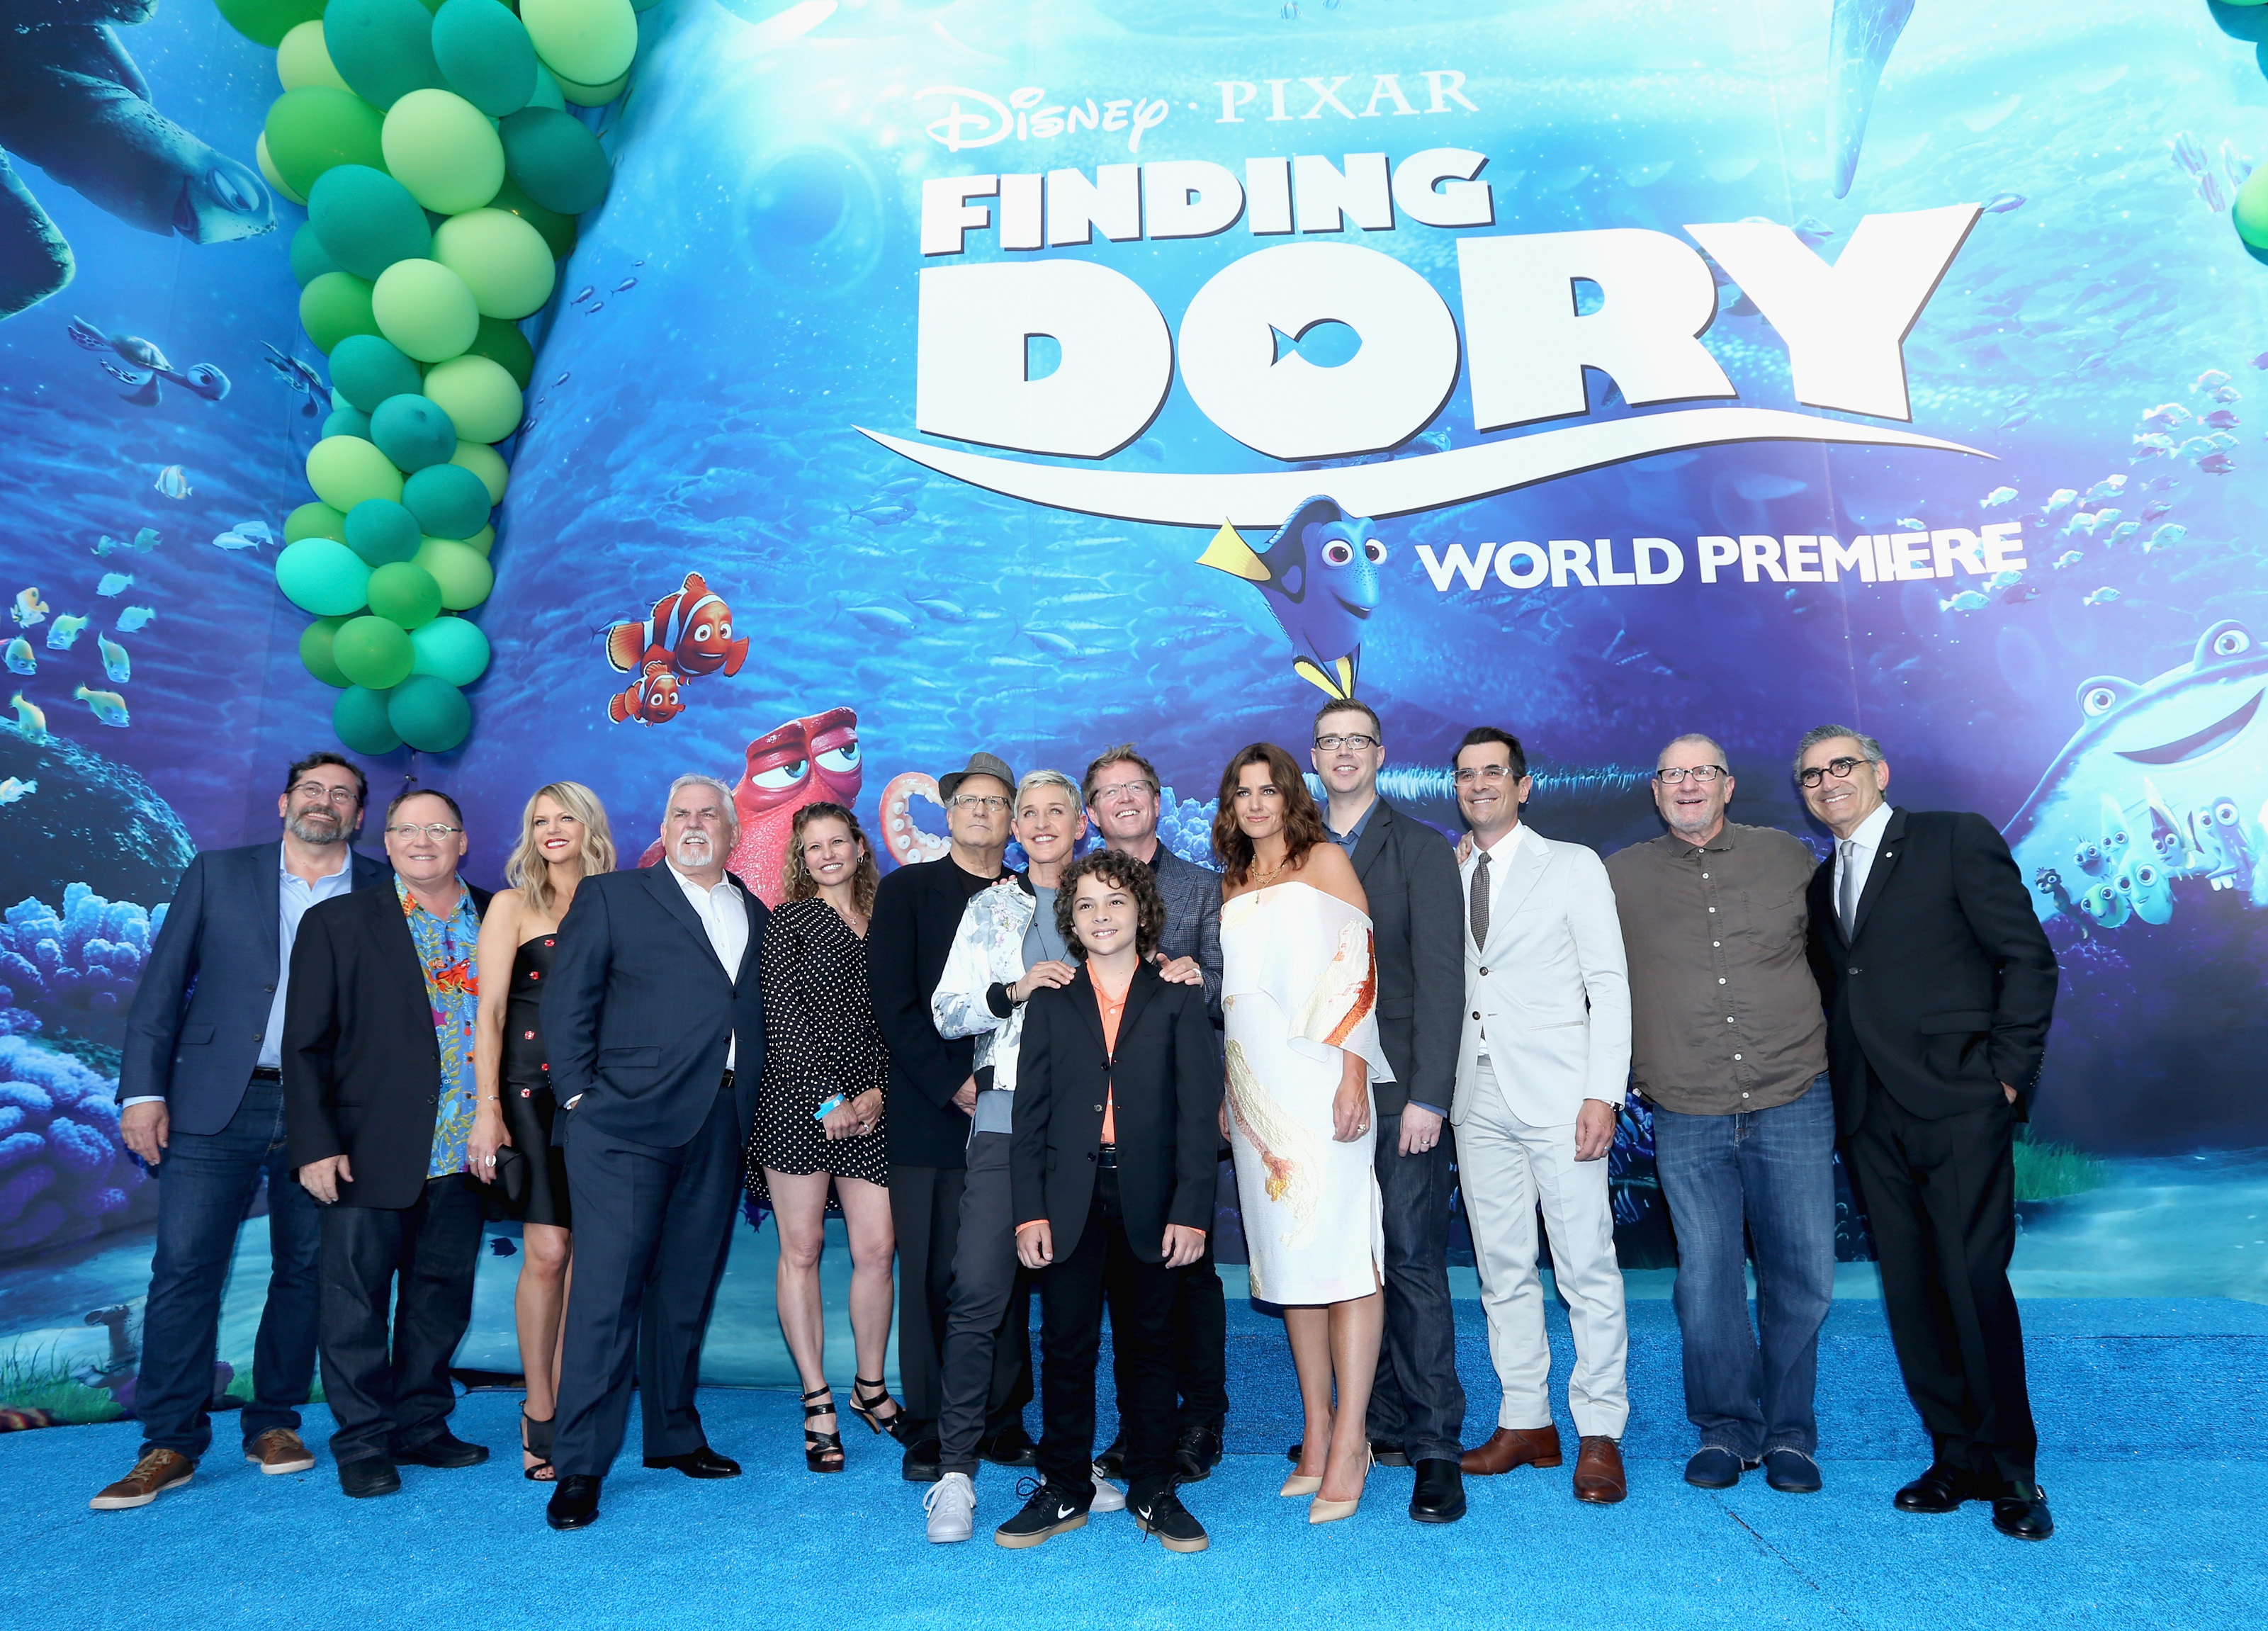 HOLLYWOOD, CA - JUNE 08: (L-R) Actor Bob Peterson, executive producer John Lasseter, actors Kaitlin Olson, John Ratzenberger, screenwriter Victoria Strouse, actors Albert Brooks, Ellen DeGeneres, Director/screenwriter Andrew Stanton, actor Hayden Rolence, producer Lindsey Collins, co-director Angus MacLane, actors Ty Burrell, Ed O'Neill and Eugene Levy attend The World Premiere of Disney-Pixar?s FINDING DORY on Wednesday, June 8, 2016 in Hollywood, California.   Jesse Grant/Getty Images for Disney /AFP